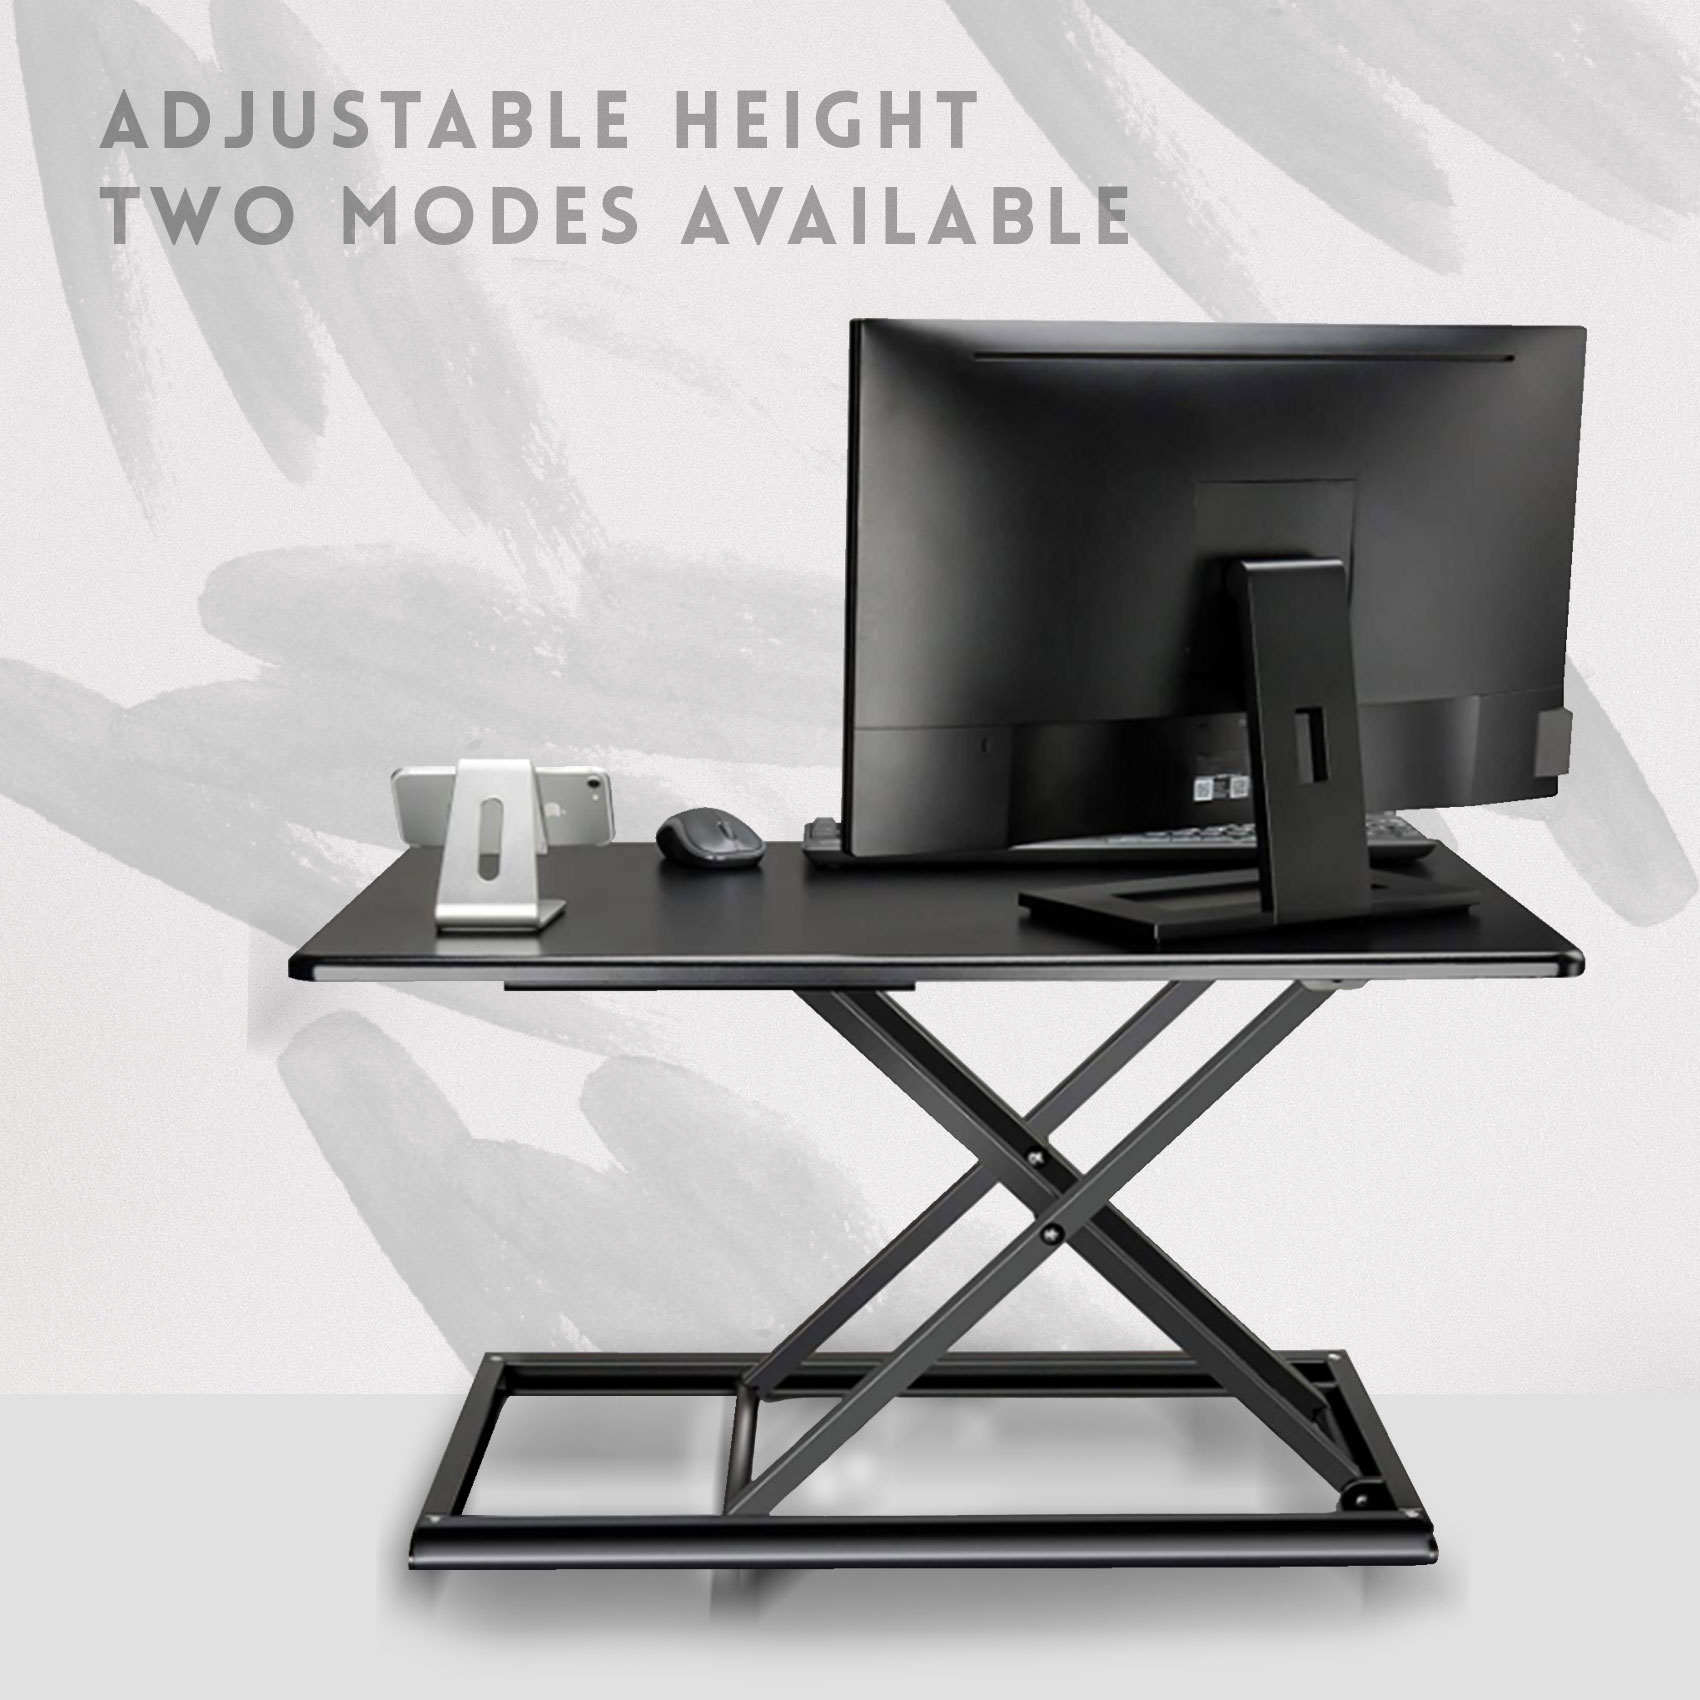 Adjustable Sit Stand Work Desk – Black